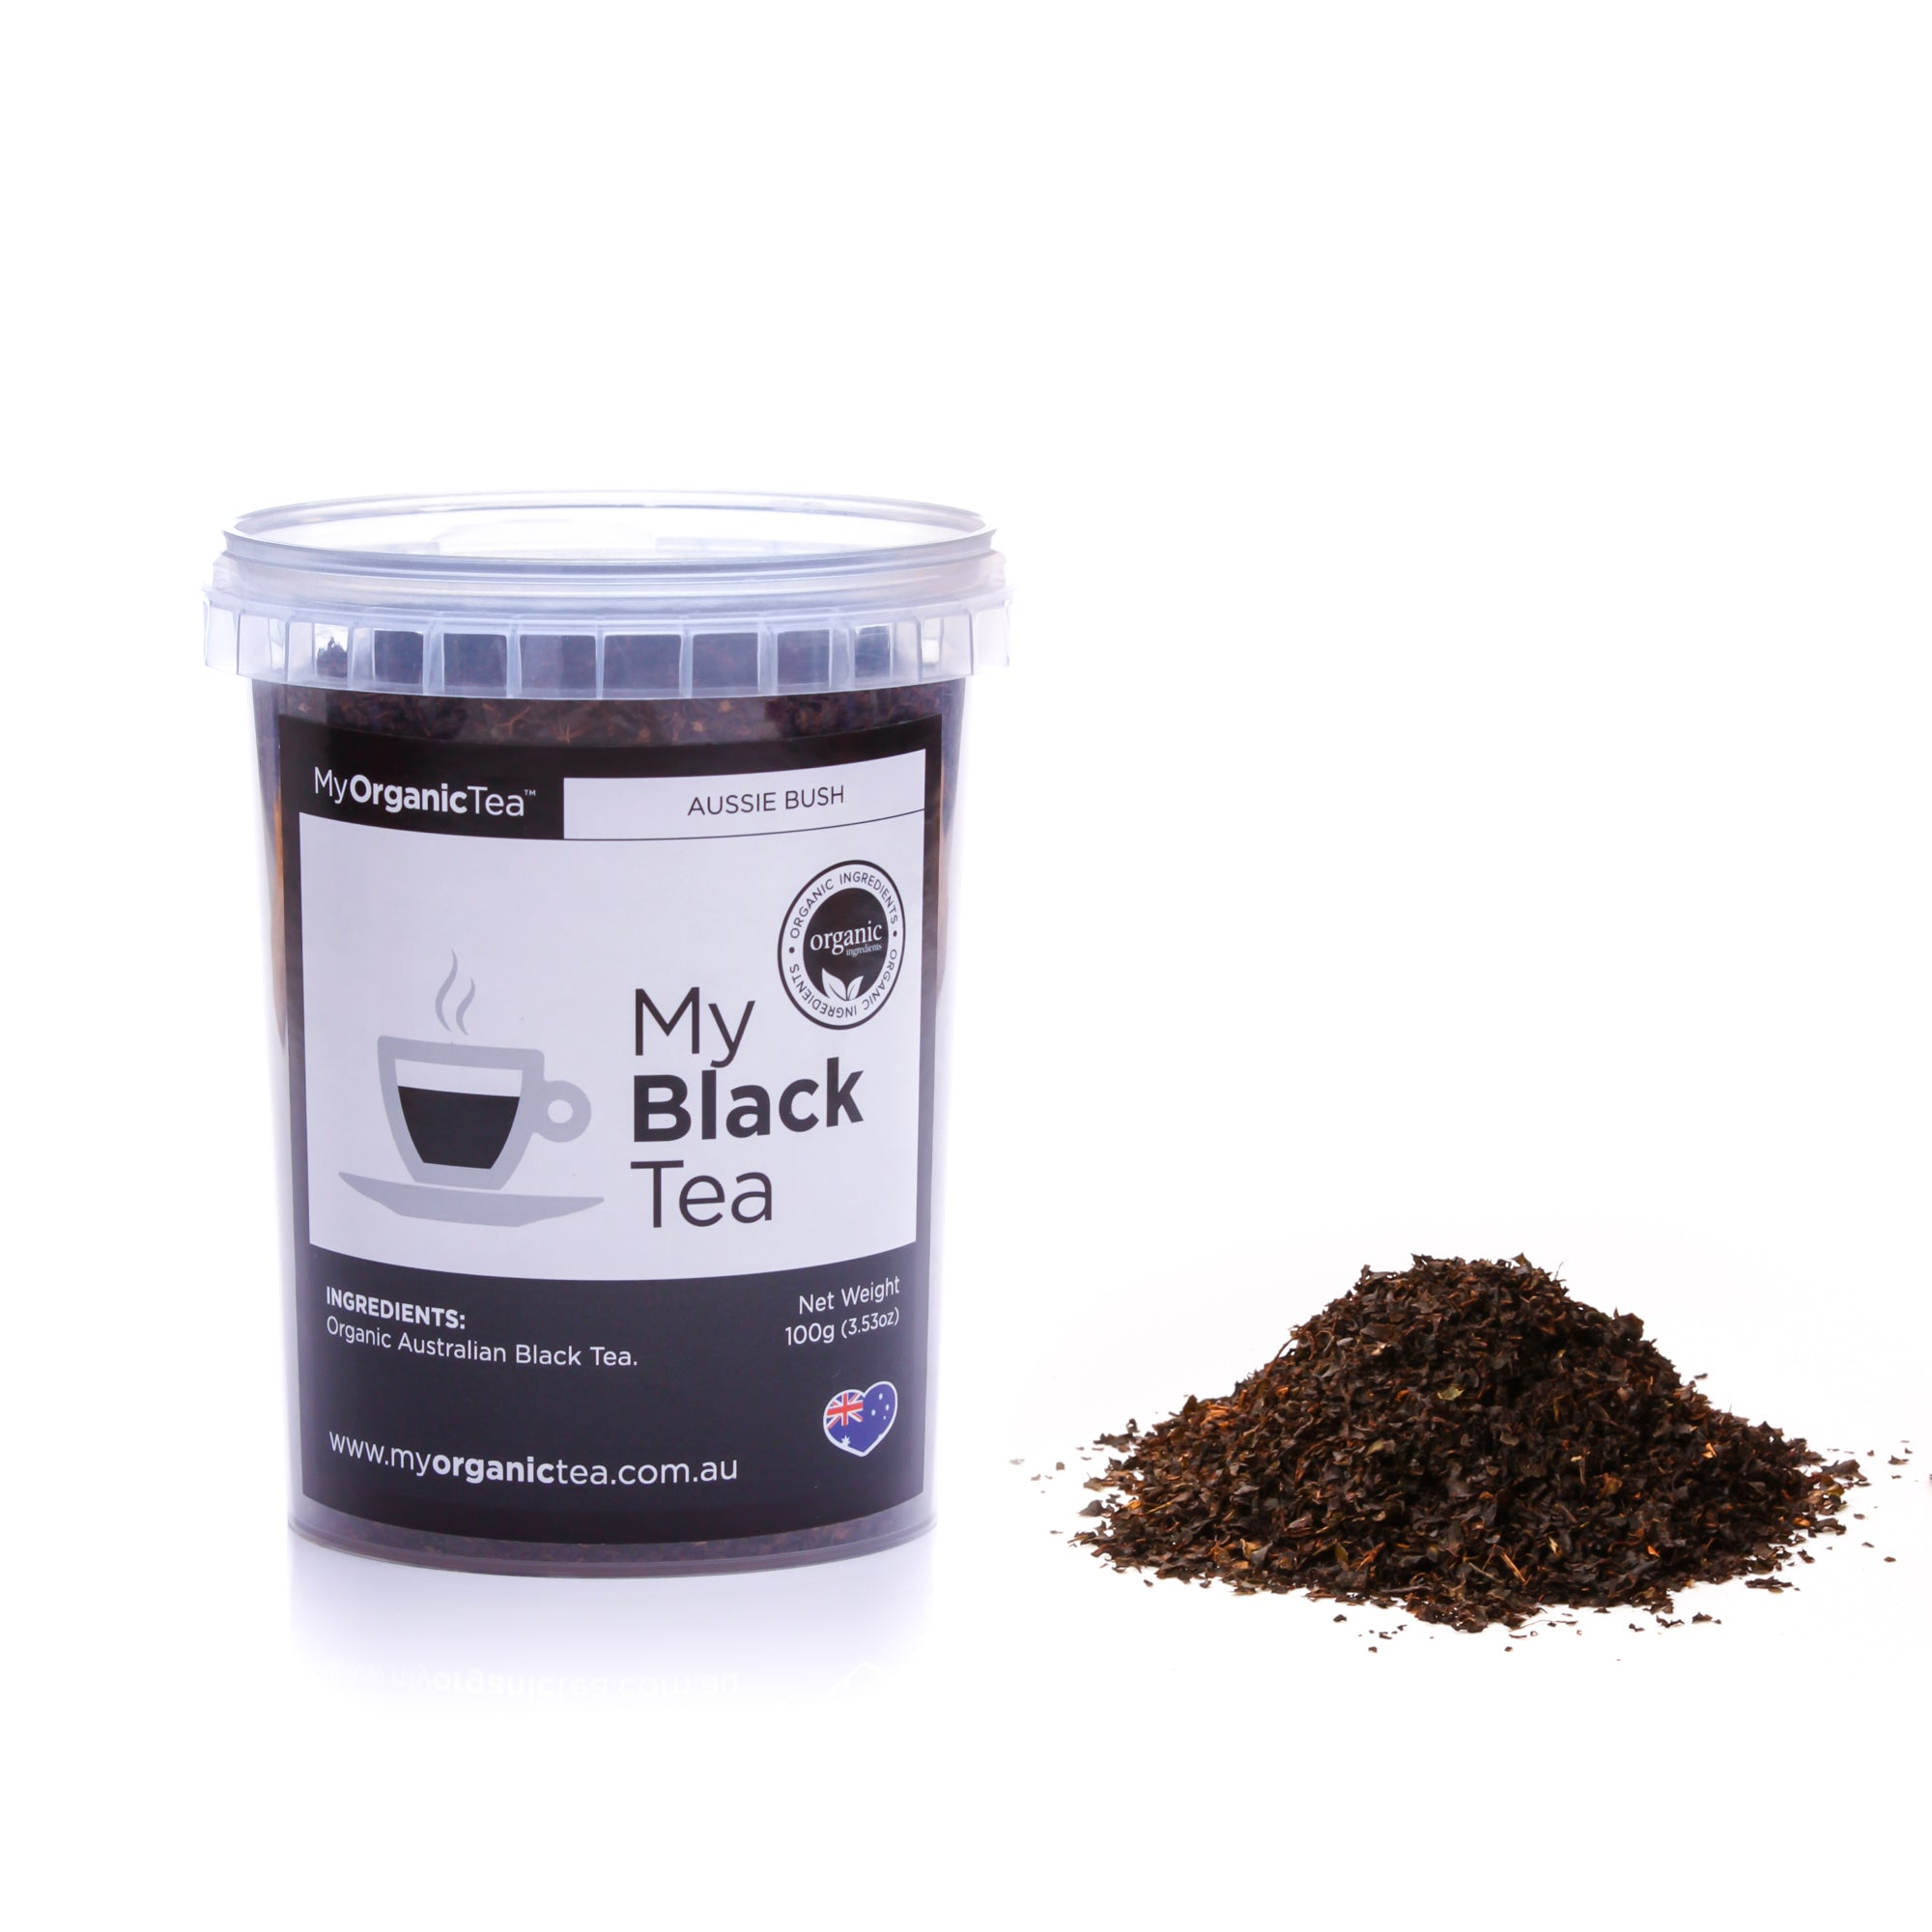 My Black Tea 100 Grams (50 Serves) - OrganiTea Australia